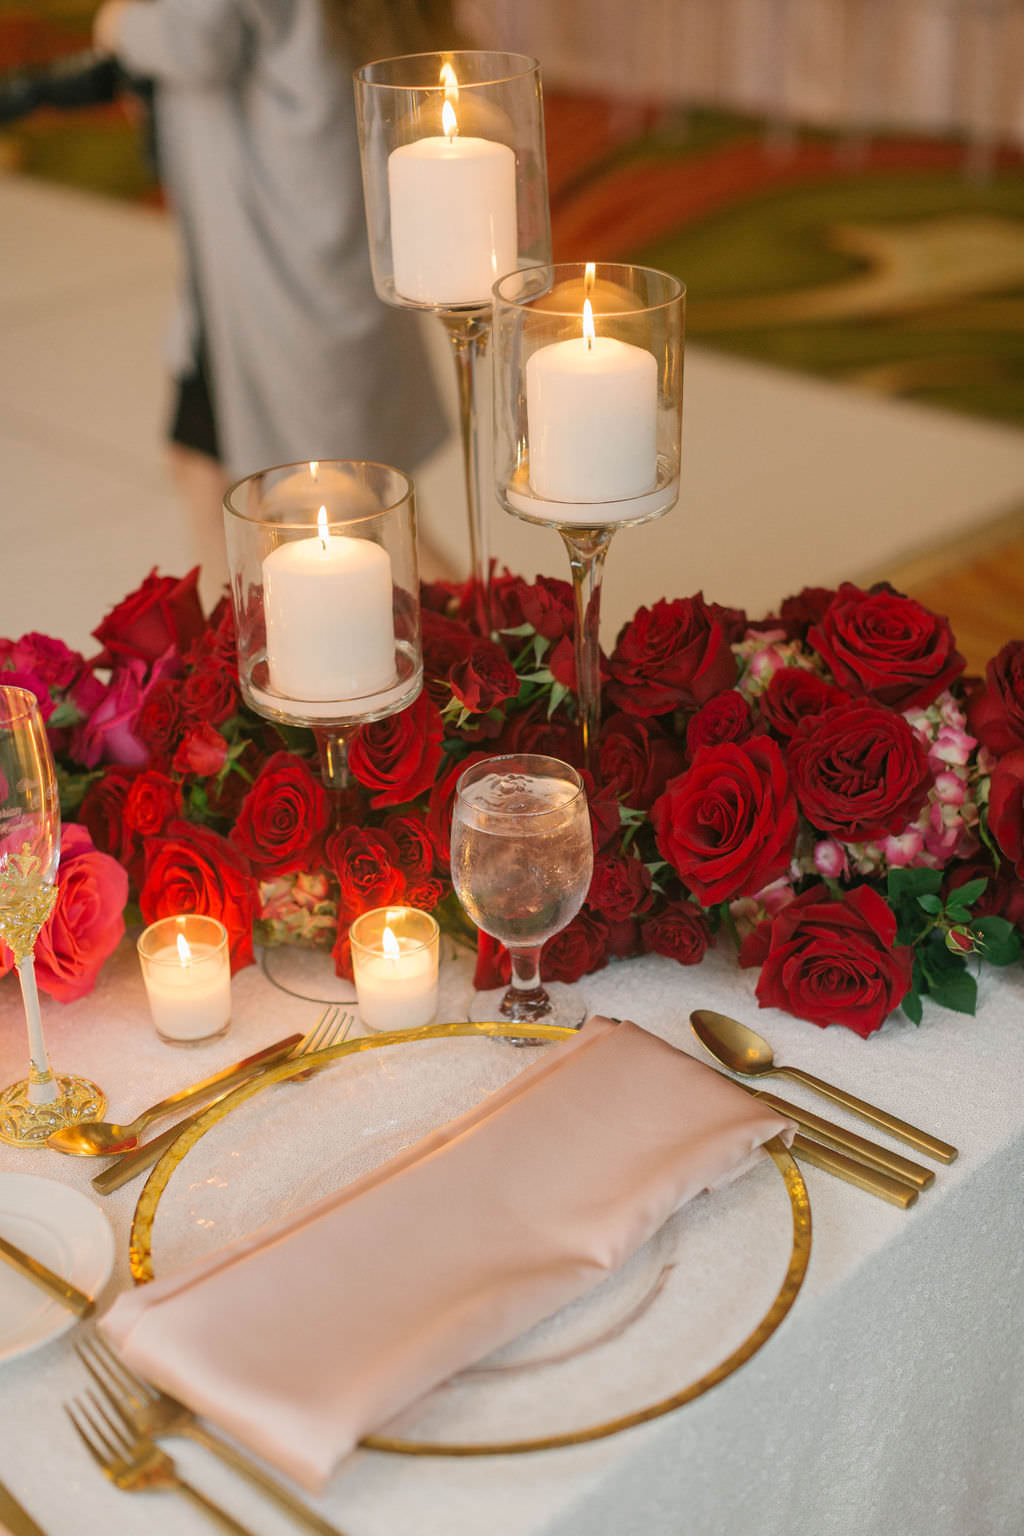 Romantic Wedding Reception Decor, Gold Rimmer Chargers and Flatware, Glass Candlesticks, Red Roses   Tampa Wedding Planner Parties A'la Carte   Wedding Florist Bruce Wayne Florals   Wedding Rentals A Chair Affair   Over the Top Rental Linens